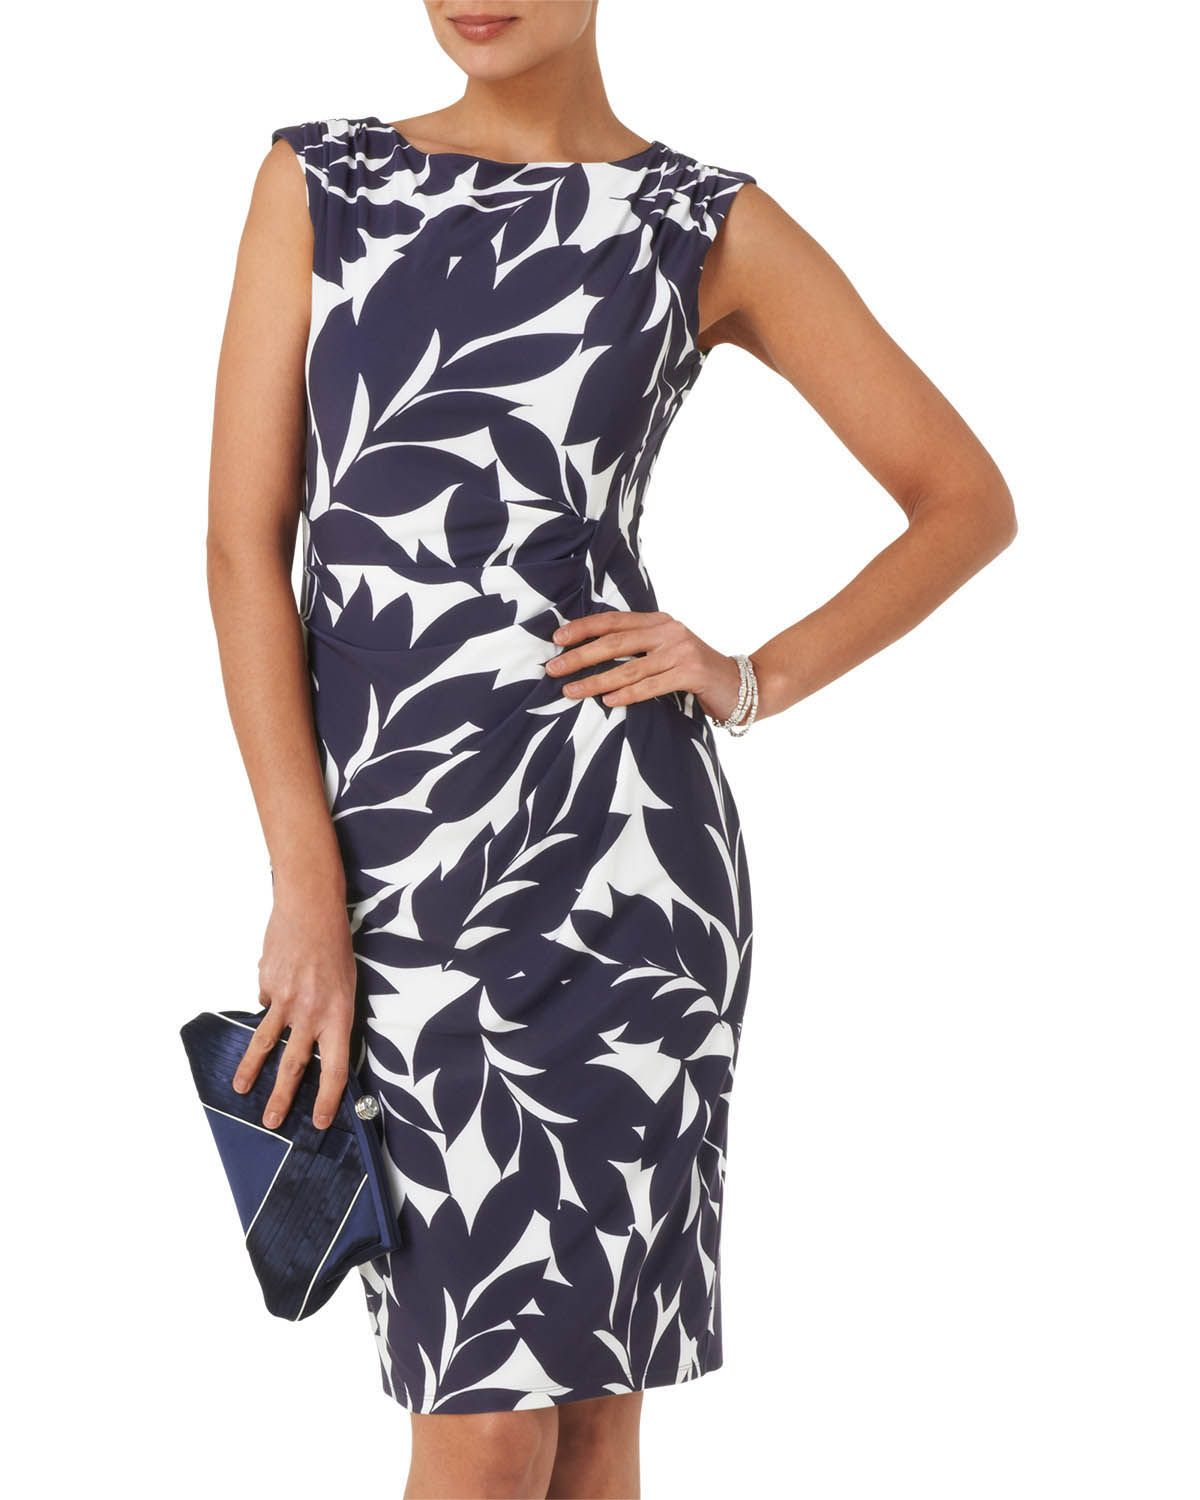 Phase Eight Women S Dresses Leaf Print Dress Spring Summer